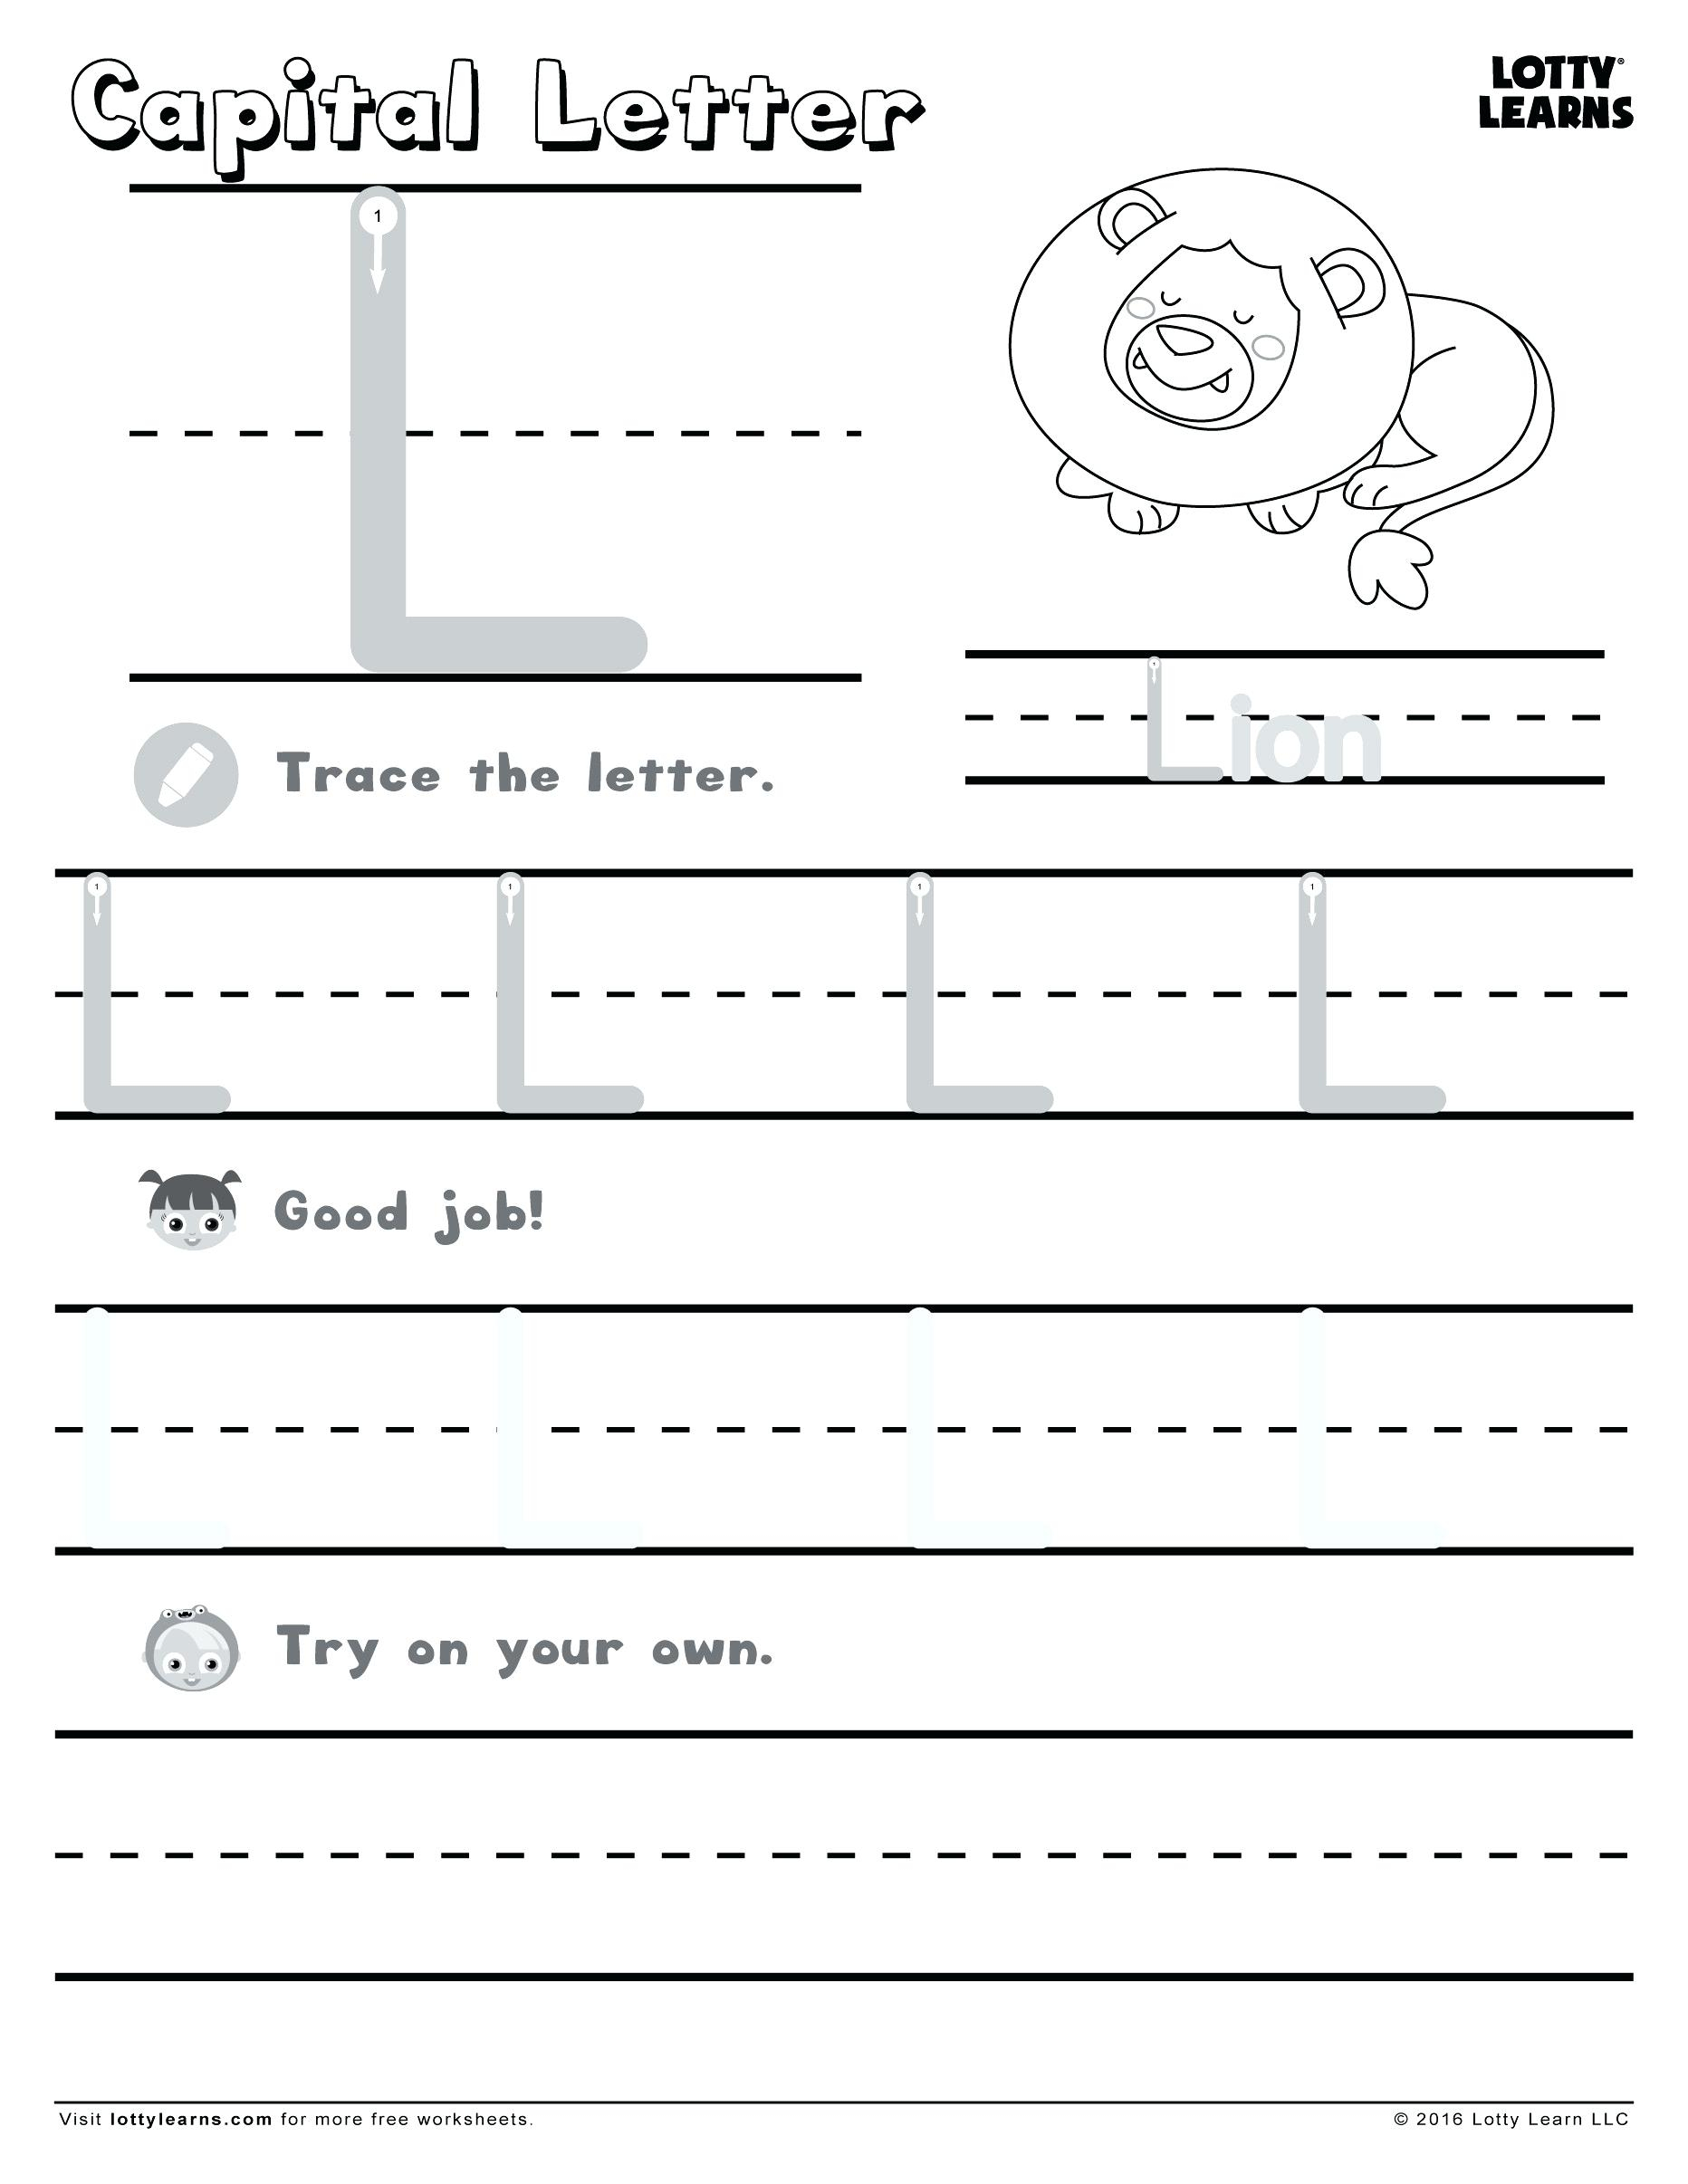 Letter L Worksheets For Kindergarten Letter L Activities For within Letter L Worksheets For Nursery